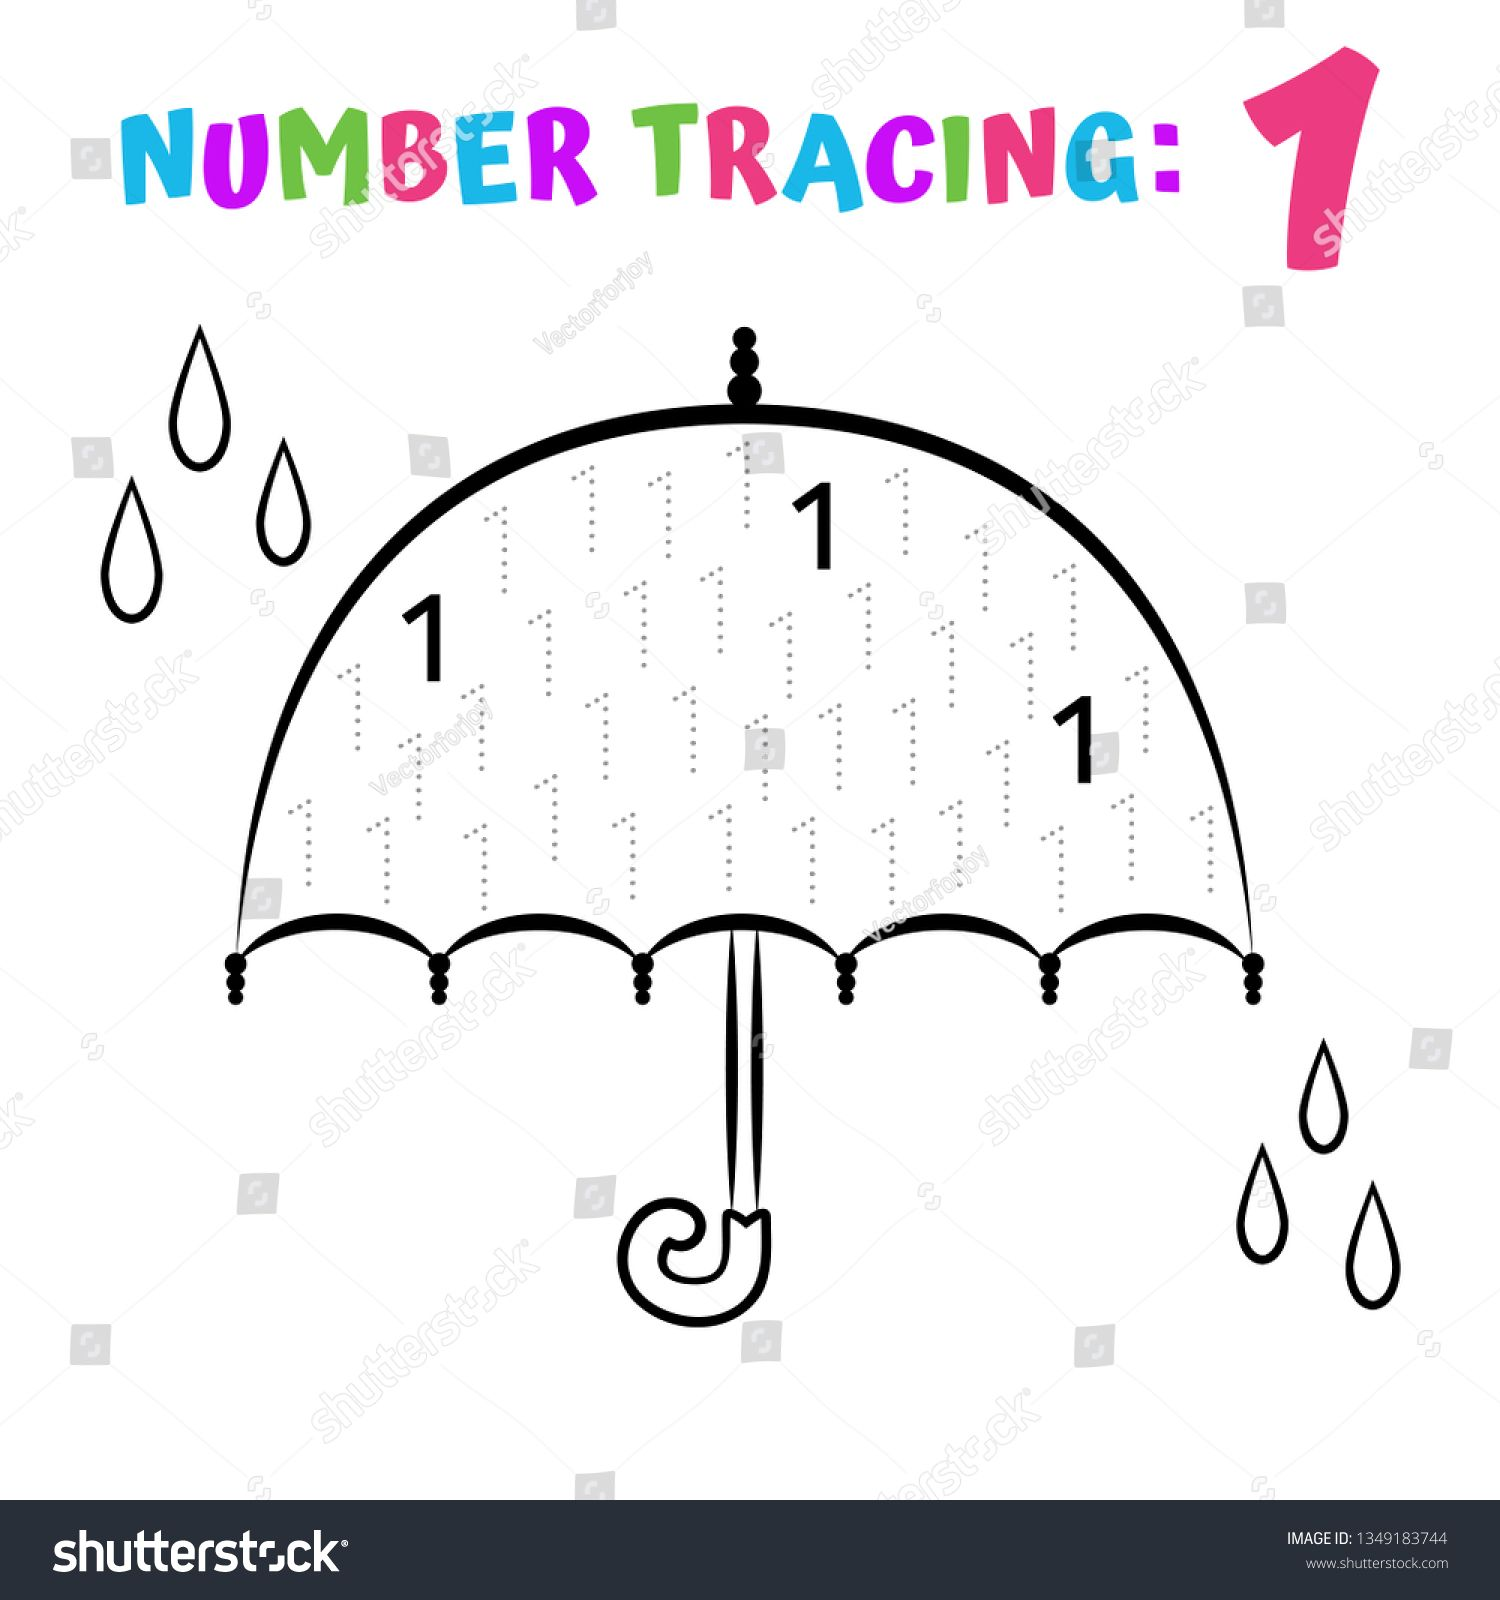 Number Tracing Worksheet. Coloring Book Page. Math Game ...